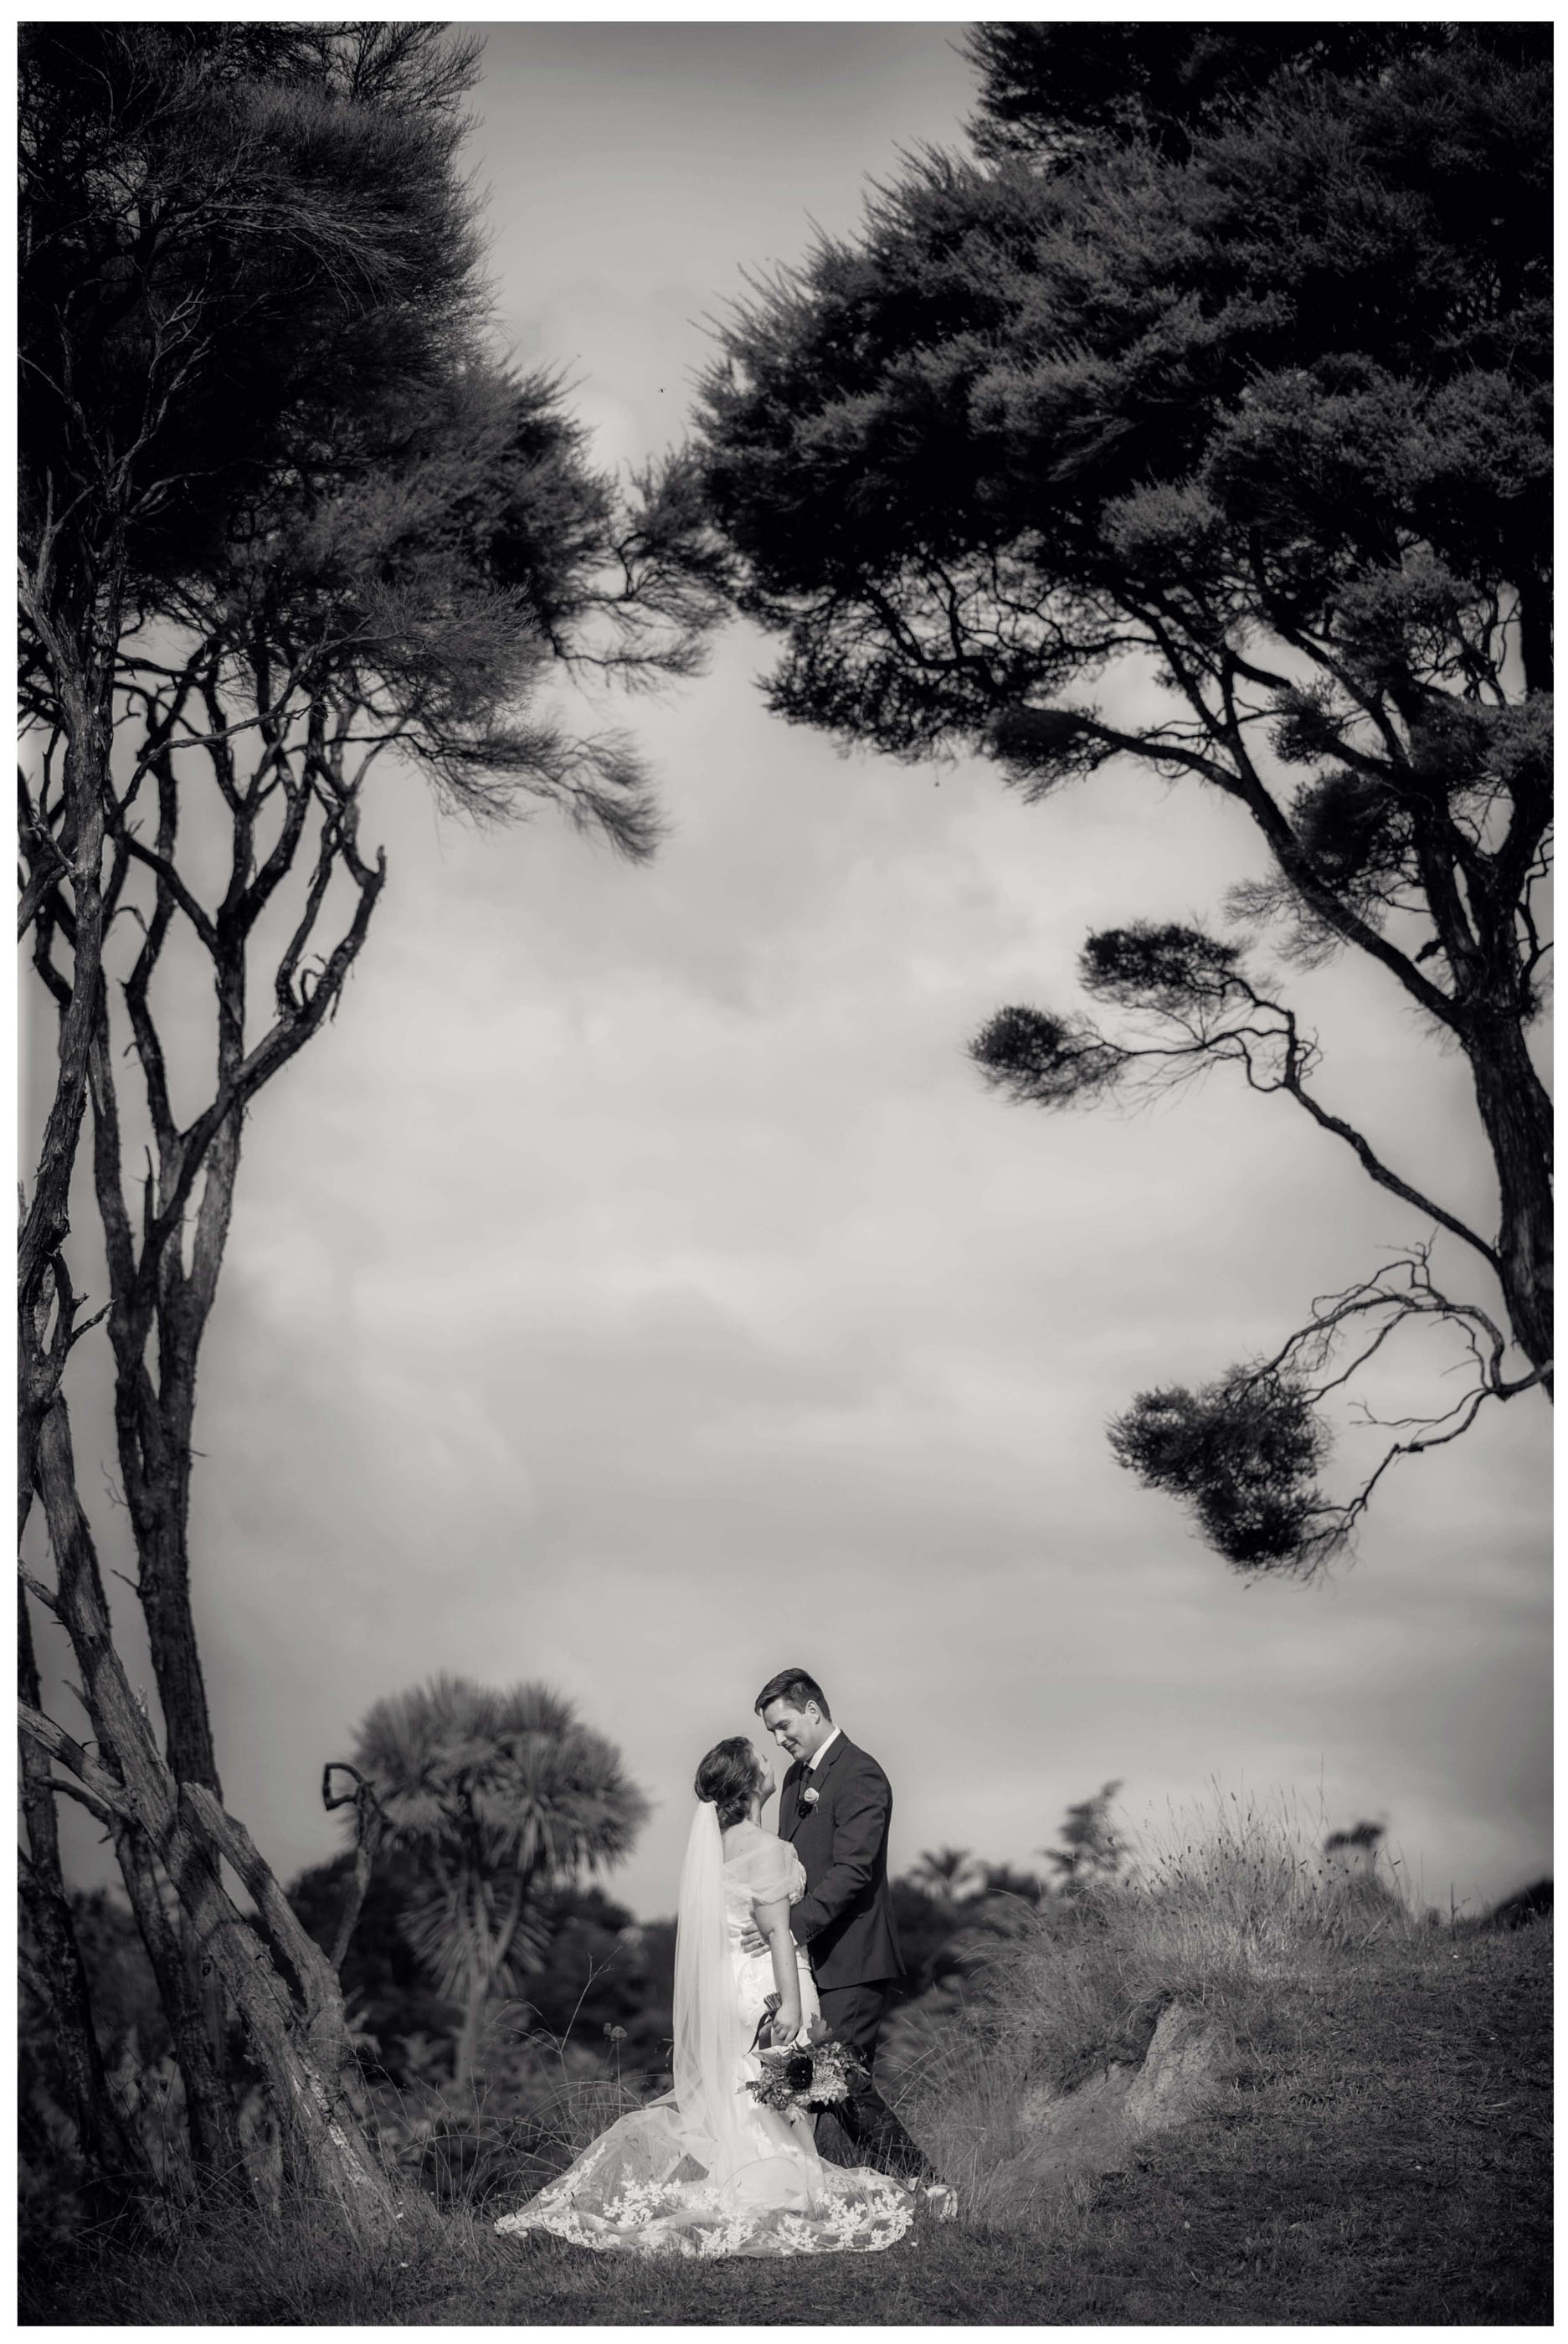 Creative wedding photo of Bride and groom under Manuka trees in Kumeu